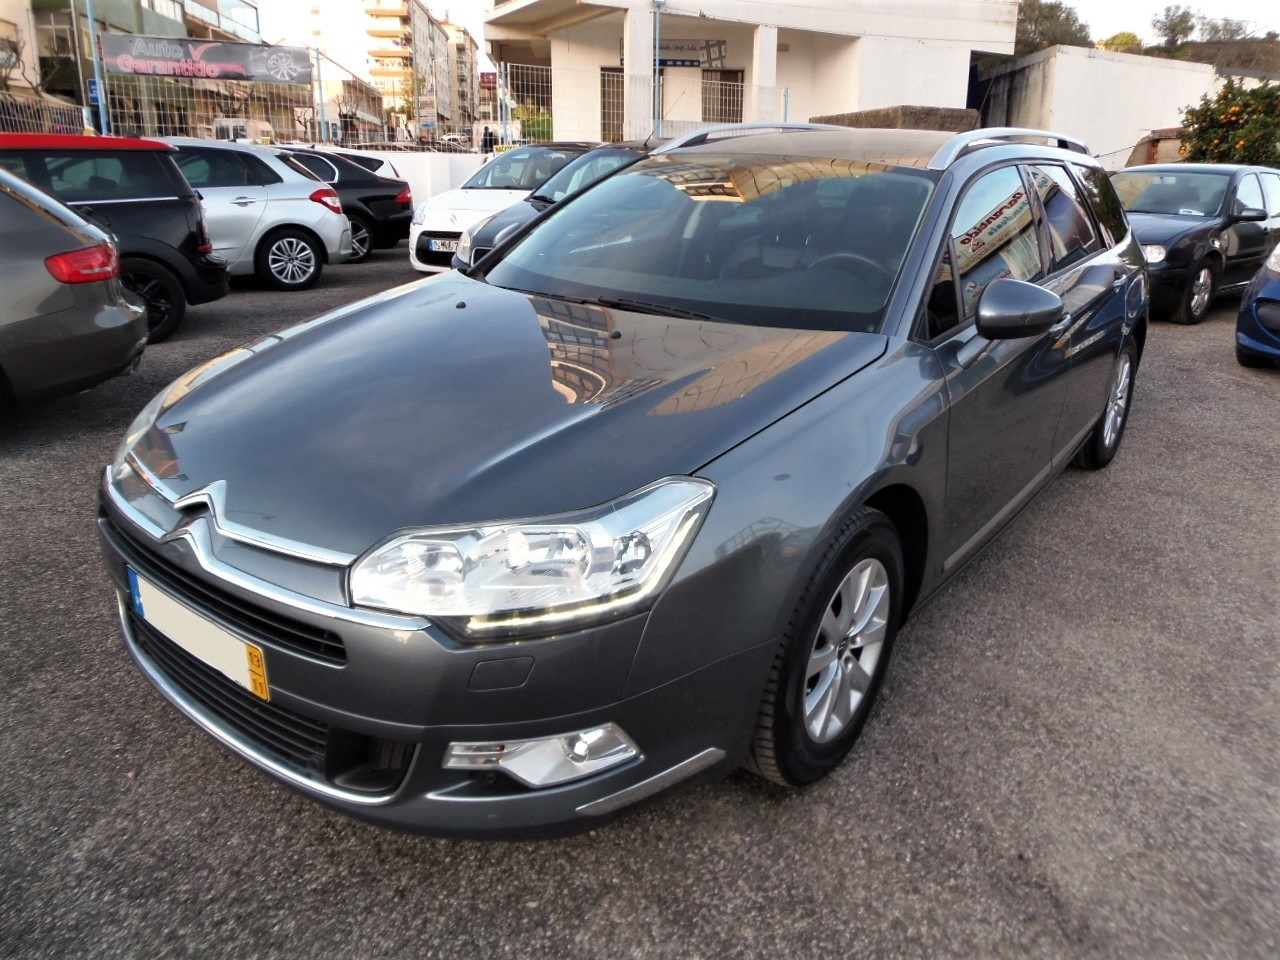 Citroën C5 Tourer 1.6HDi Exclusive